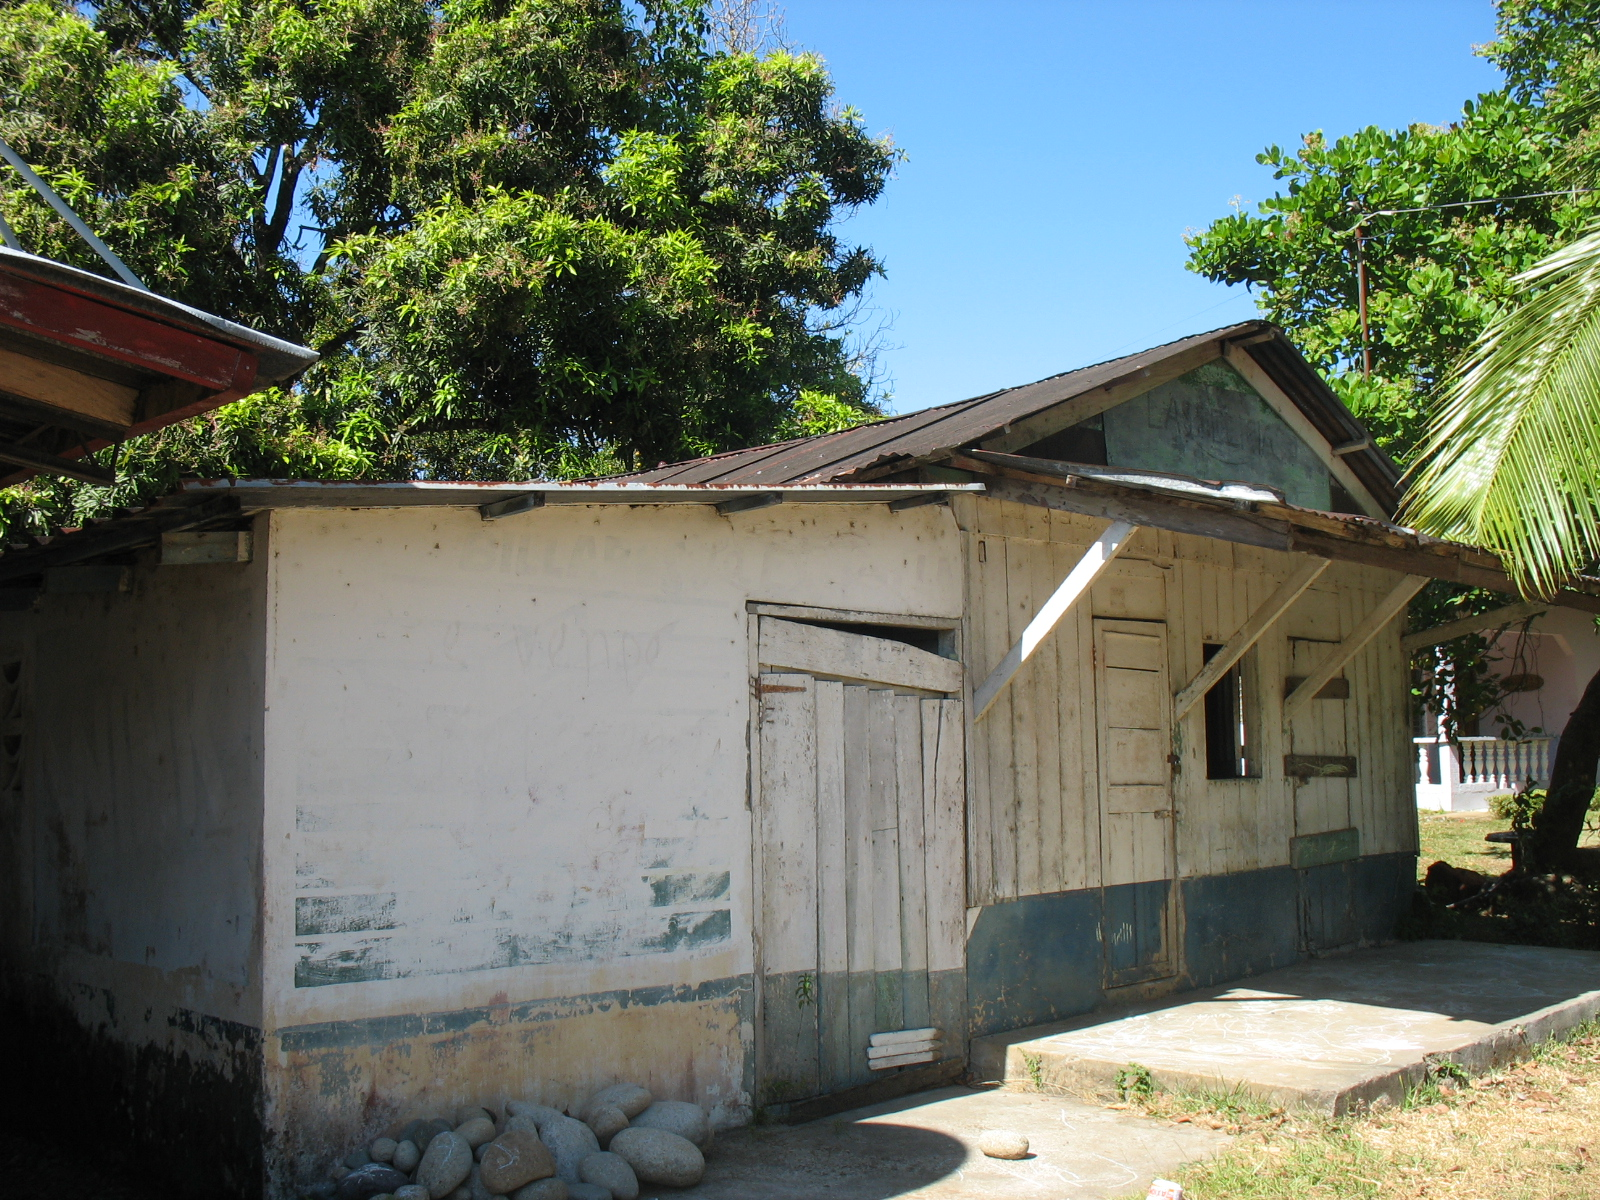 Upon completing our work for Rancho de Caldera, we converted an old shack into a shop.